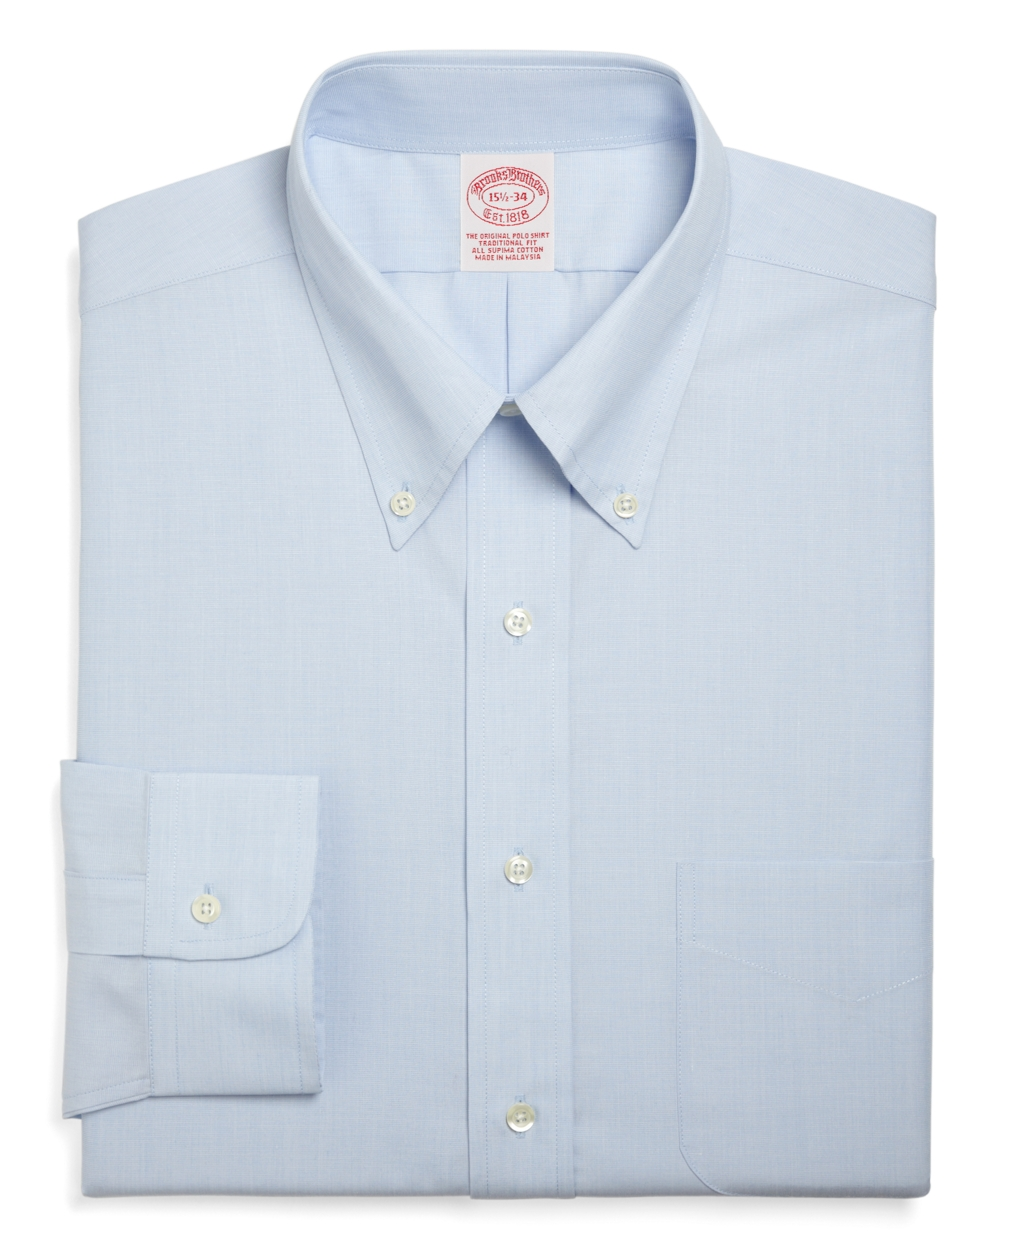 Brooks brothers traditional fit button down collar dress for Brooks brothers dress shirt fit guide